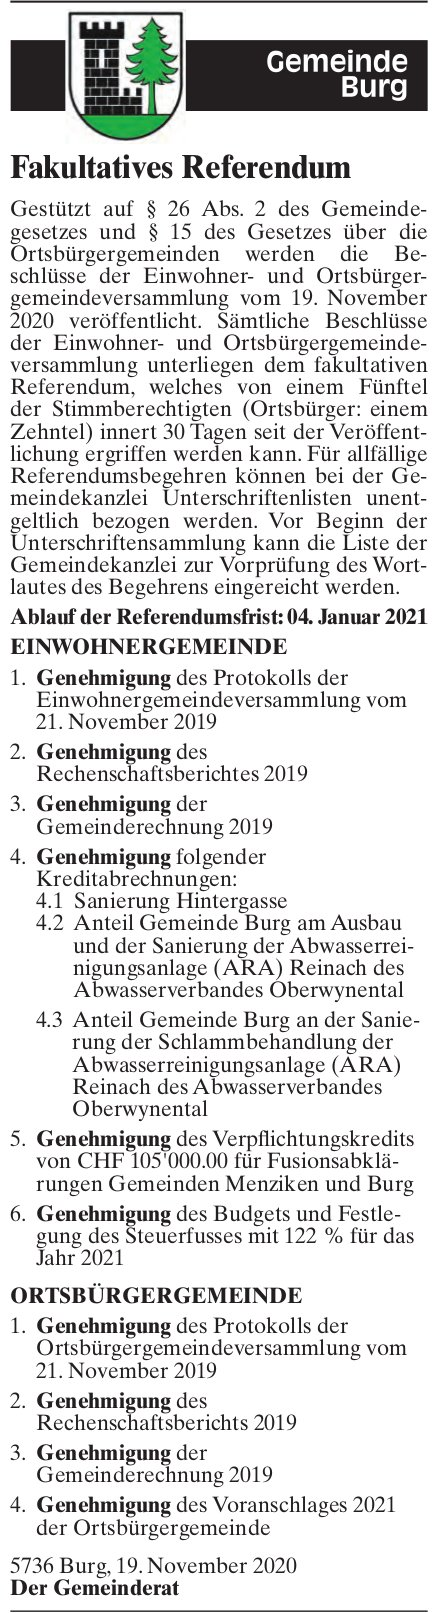 Burg - Fakultatives Referendum